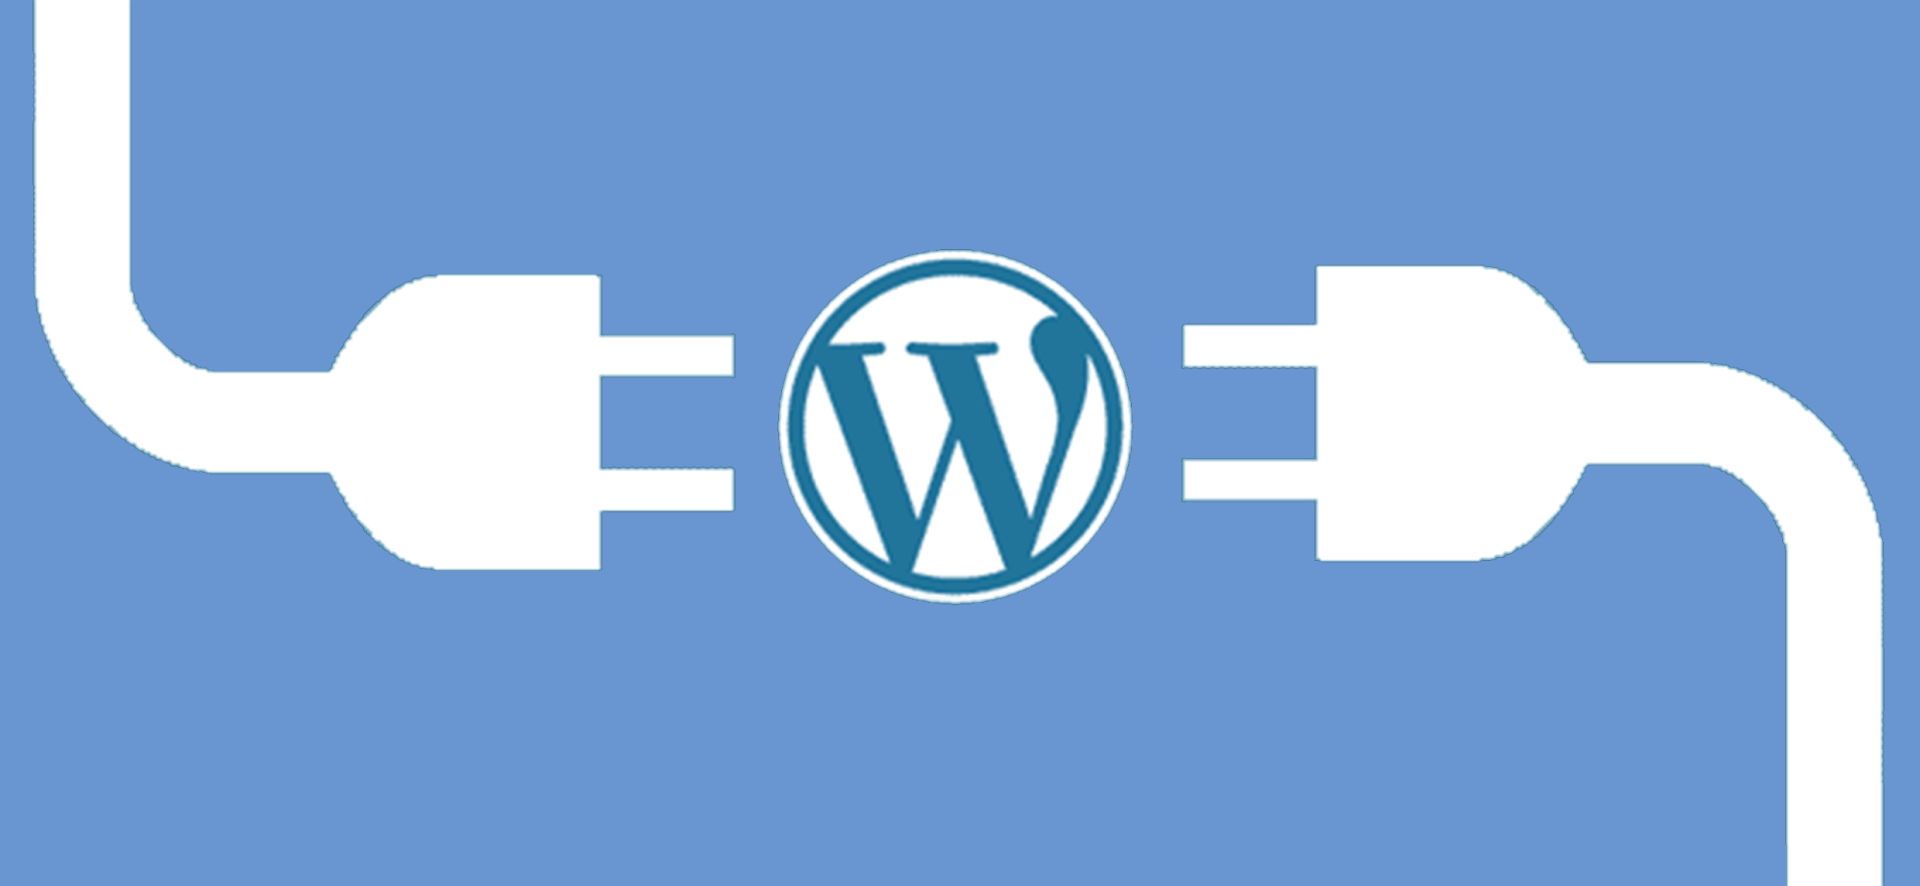 Wordpress 4.7.3 ya disponible, actualiza ahora